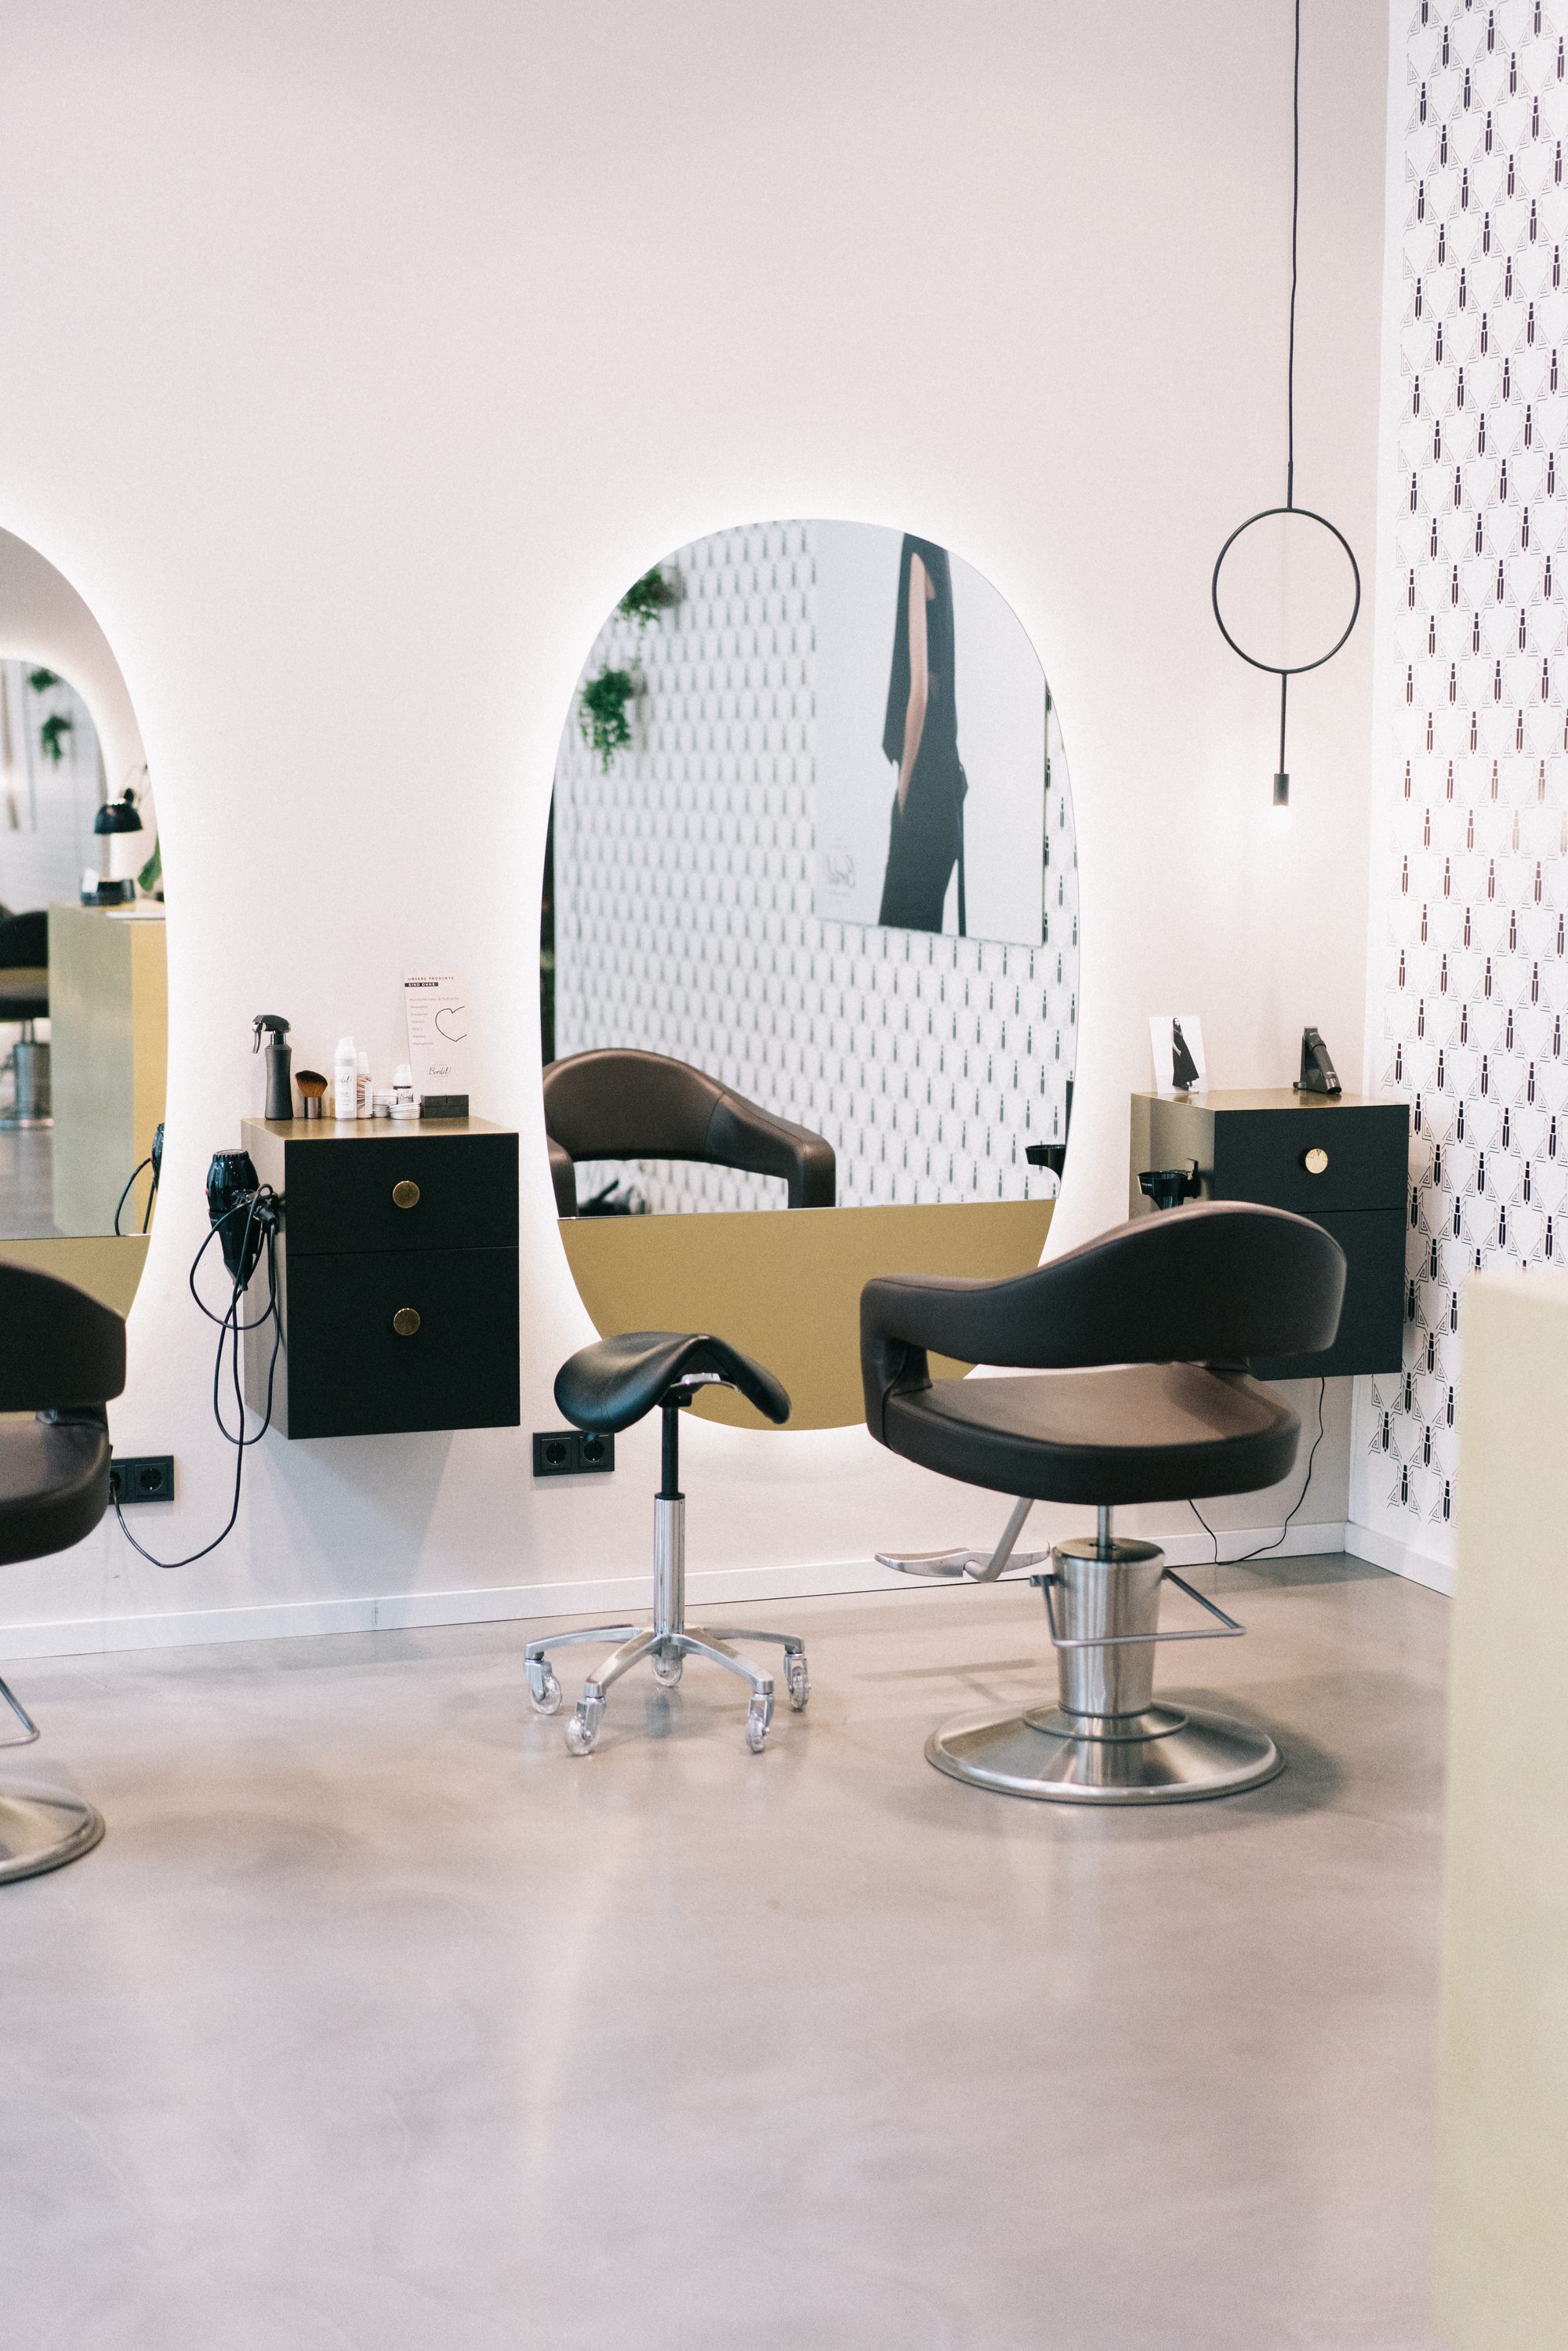 Hair salon | Bordel! | Haarsalon | Friseur | Studio Bordel | Mitte